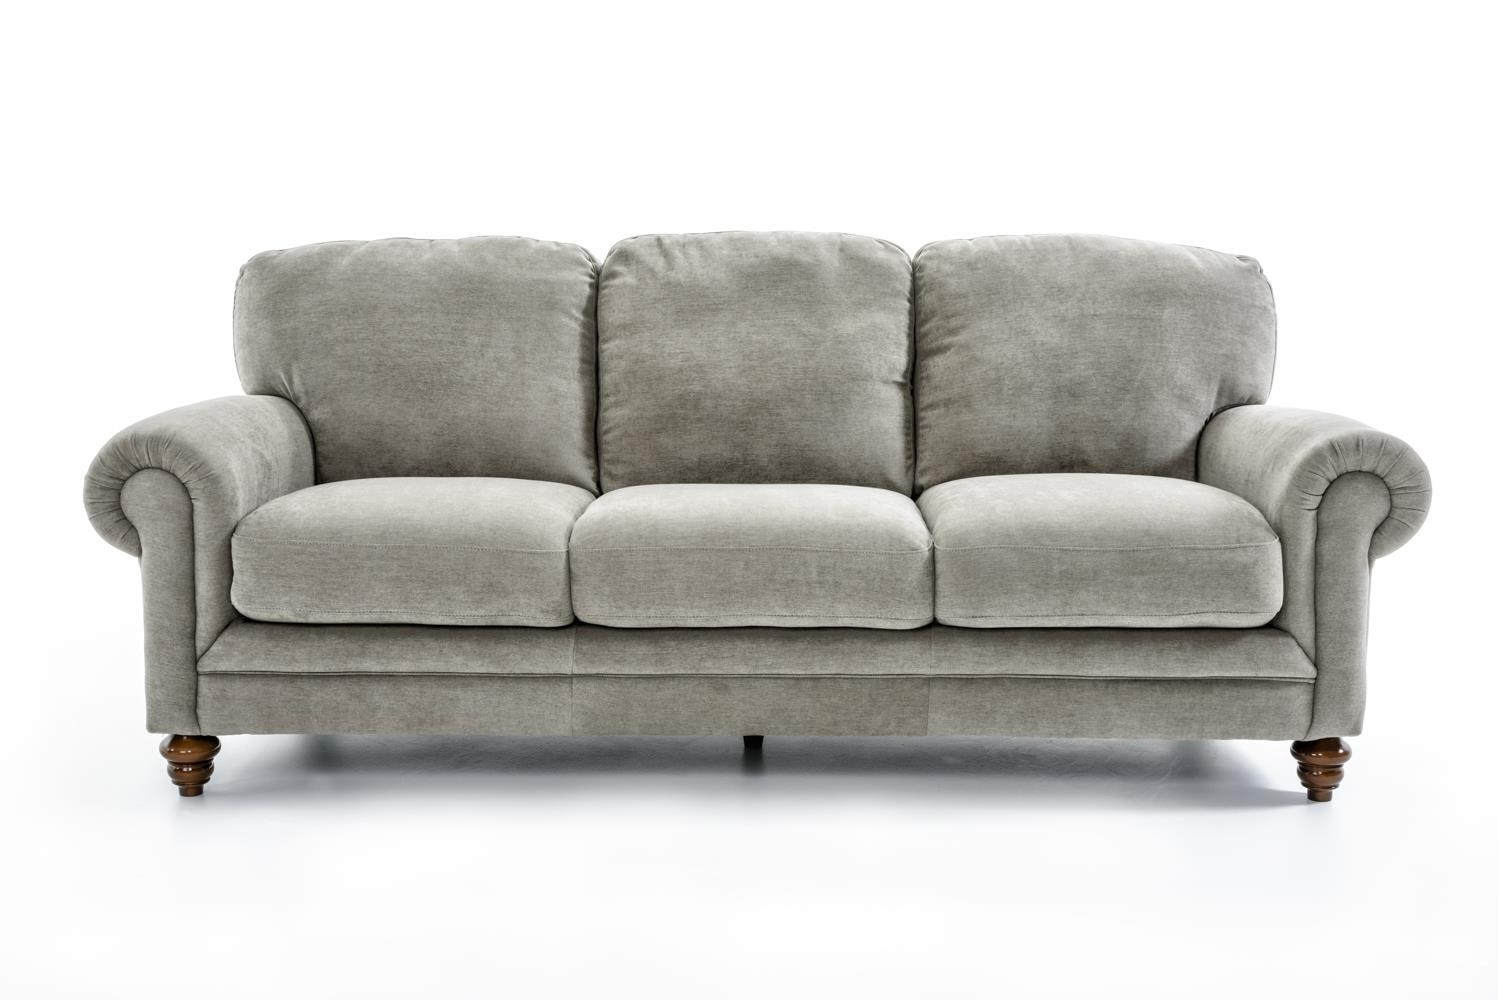 Natuzzi Editions A855 Upholstered Sofa - Item Number: A855-009 68-0030-05-09